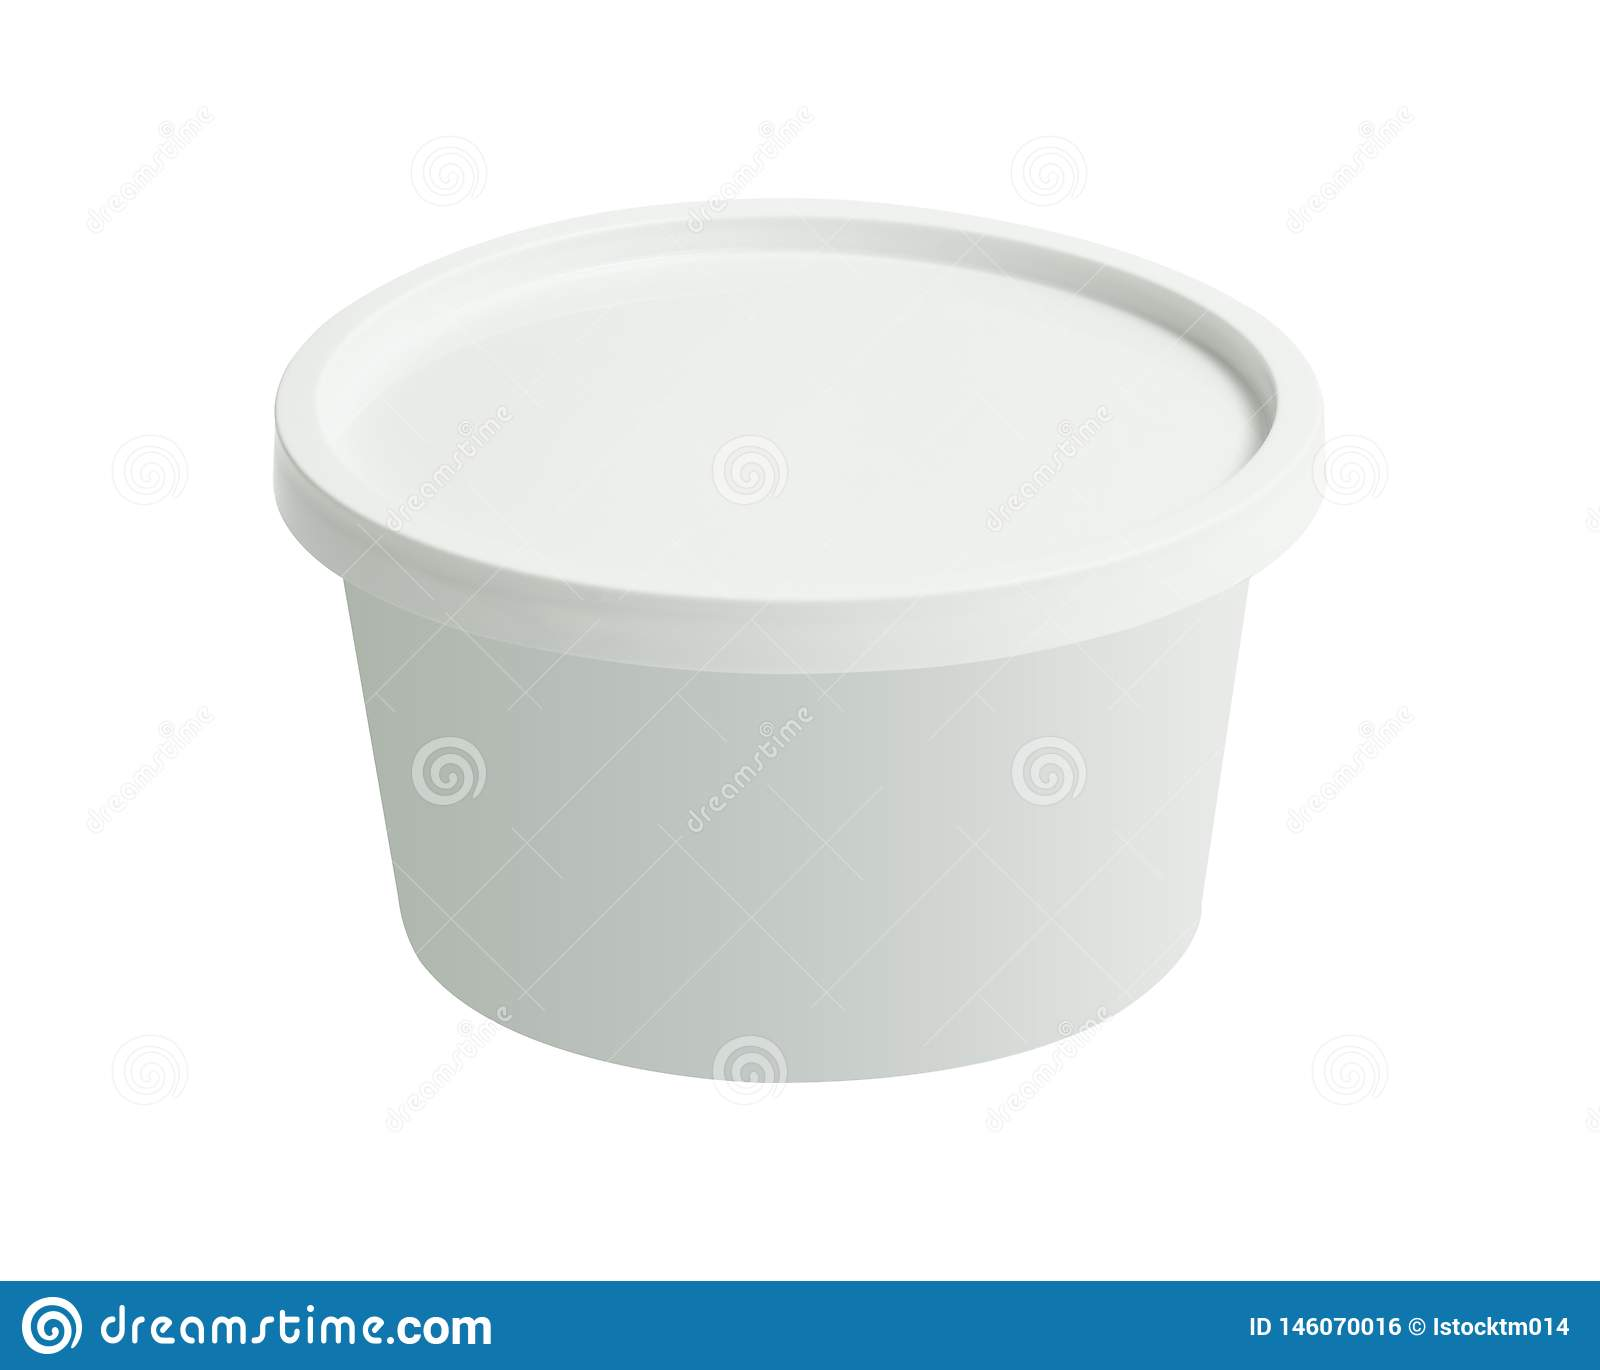 Plastic tub bucket container isolated on white background. Blank cup with cover template. Clipping path